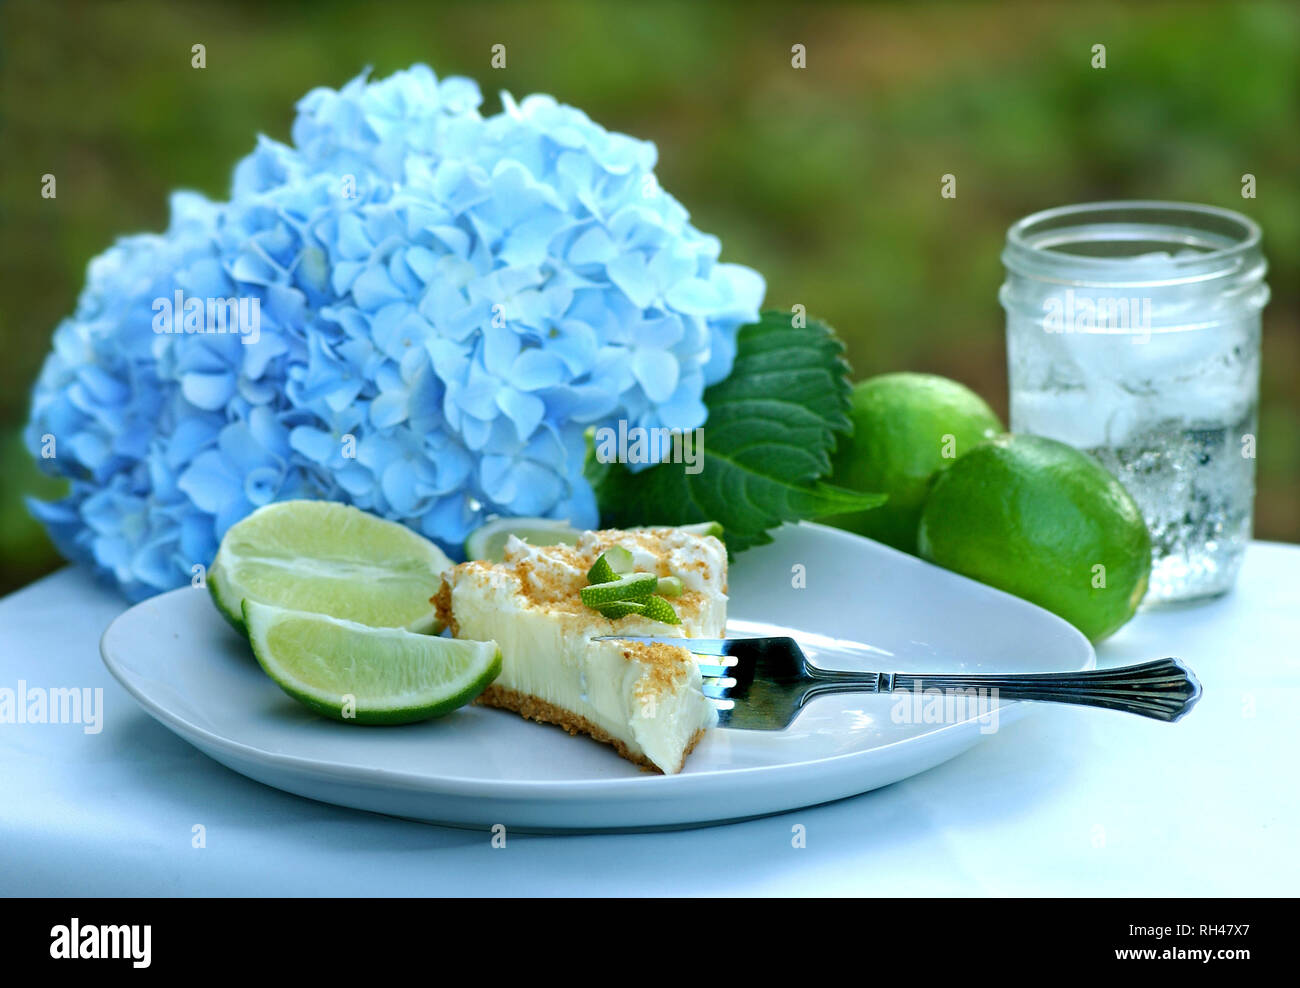 Key lime pie, served outside with lime slices and water, makes a cool summer treat in the Deep South. Stock Photo